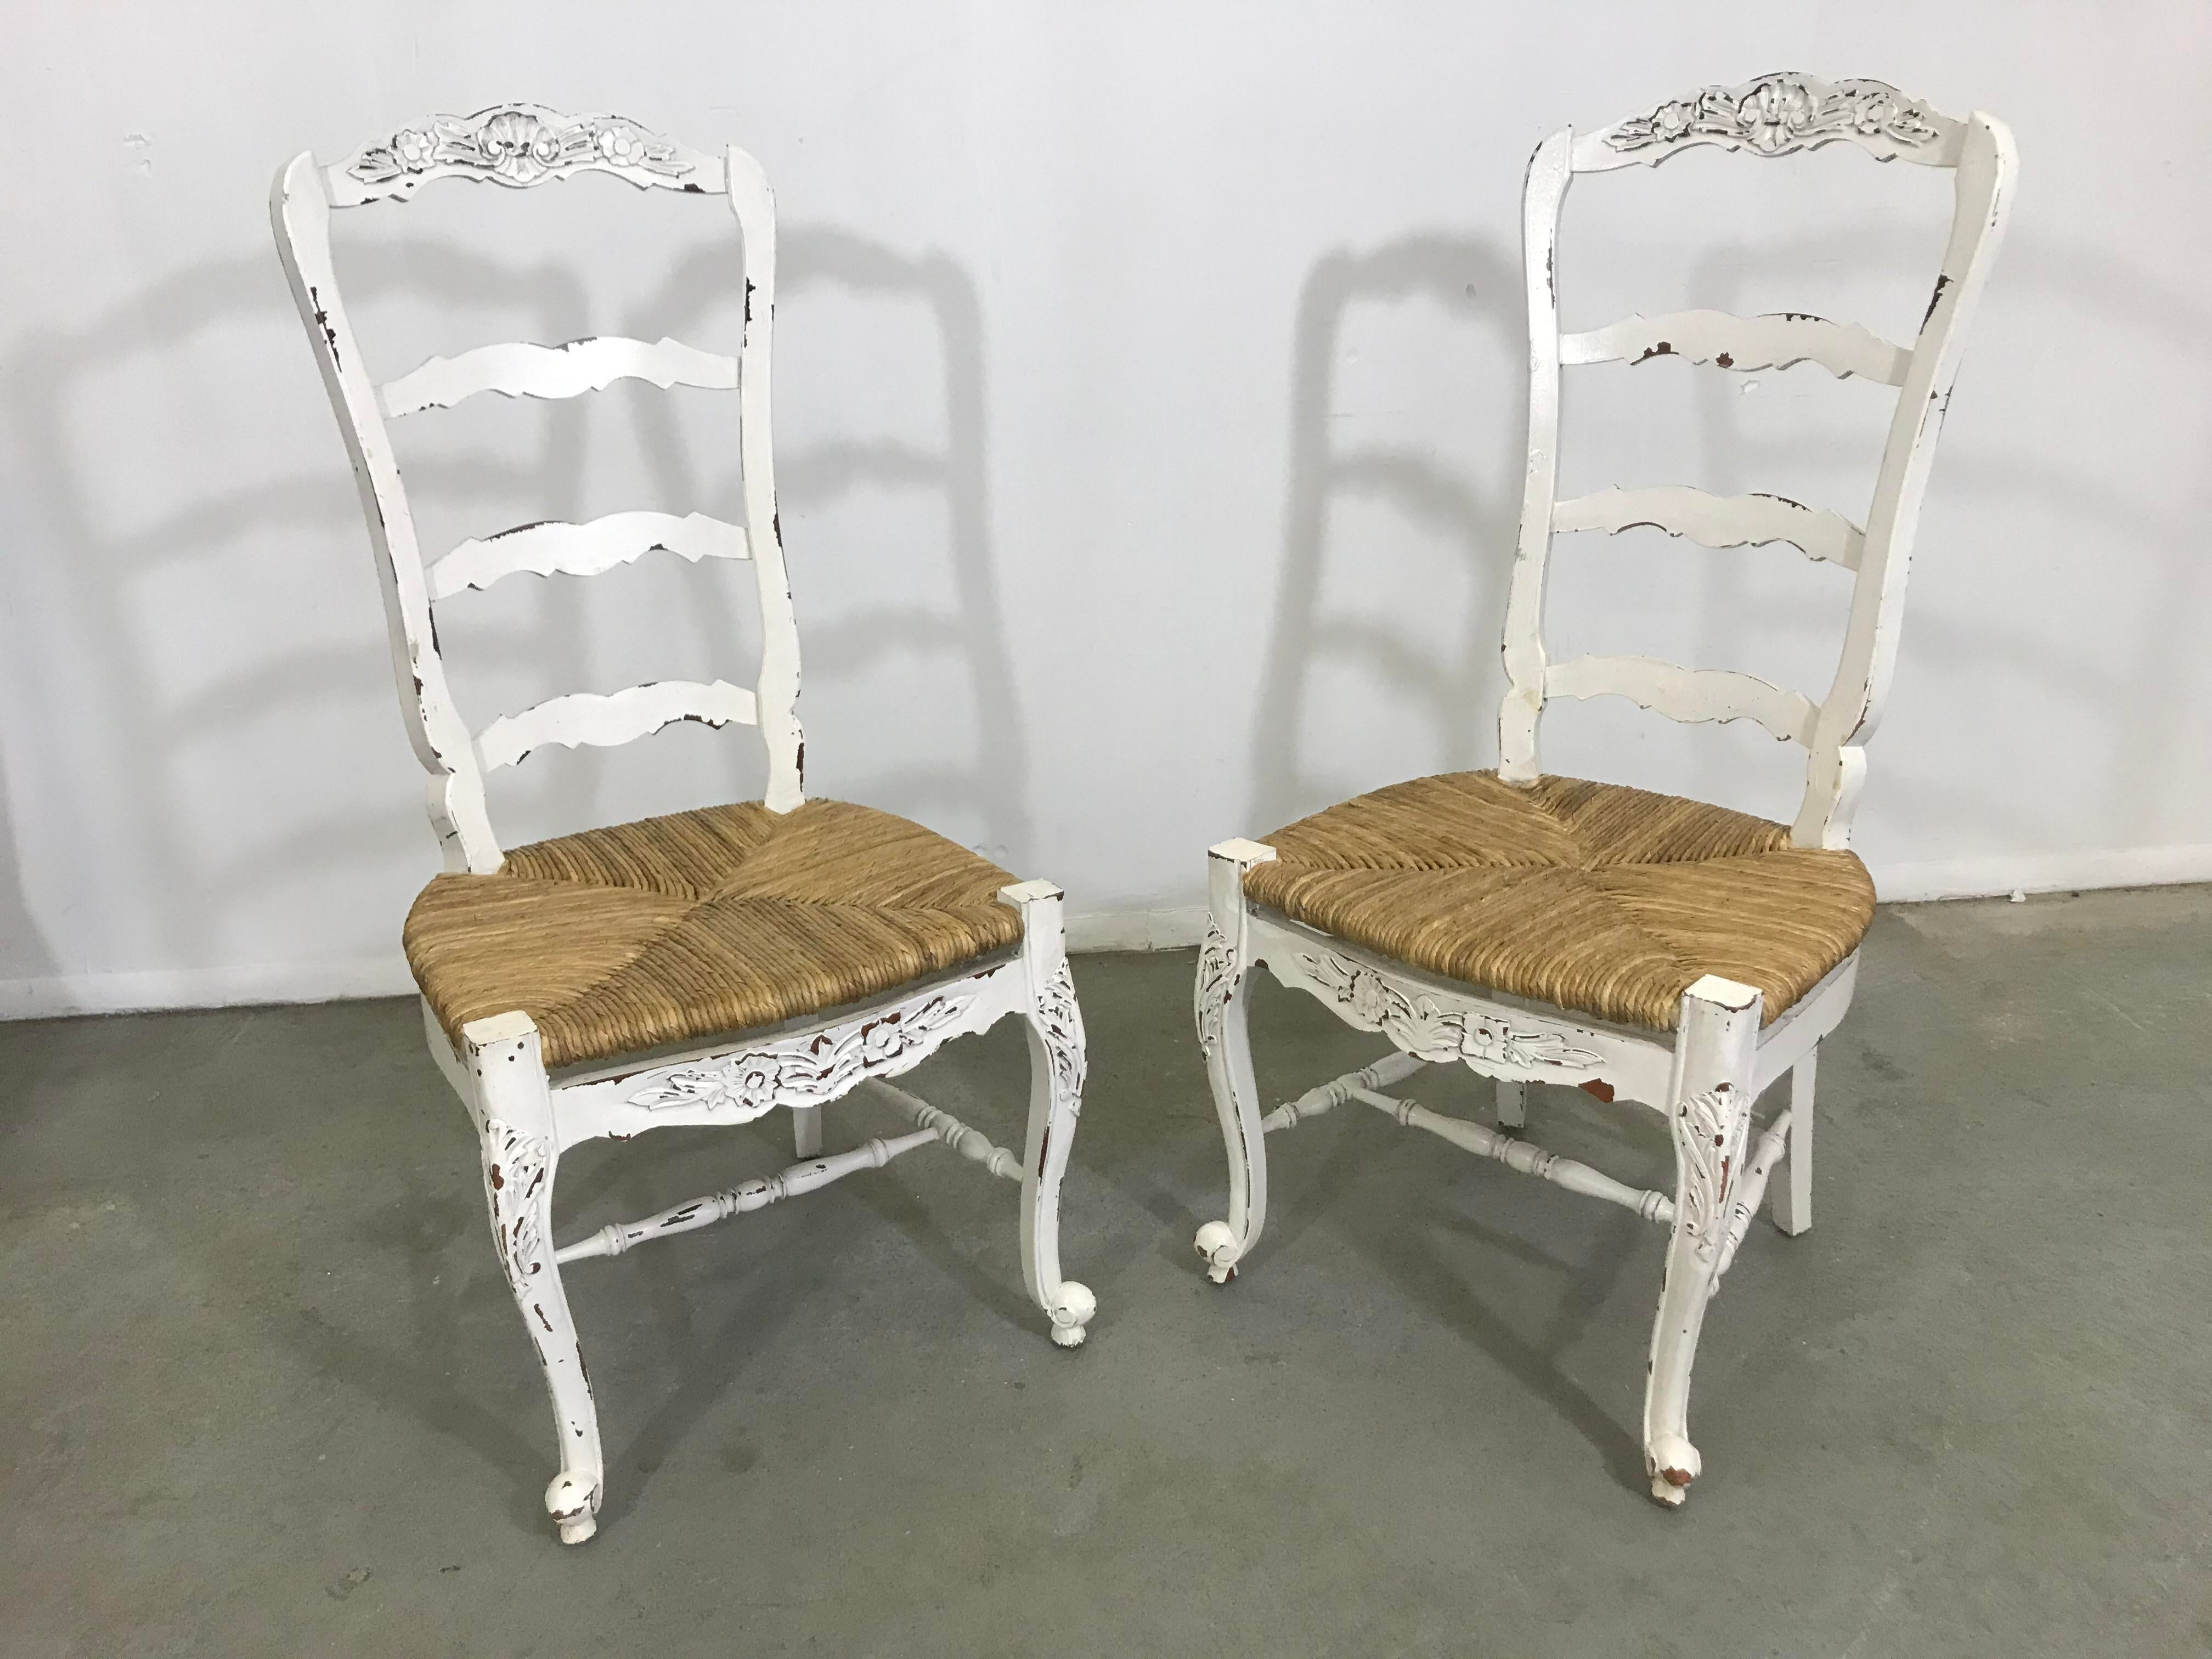 white ladder back chairs rush seats black rocking cracker barrel pair of french country carved 4 rung seat ladderback dining